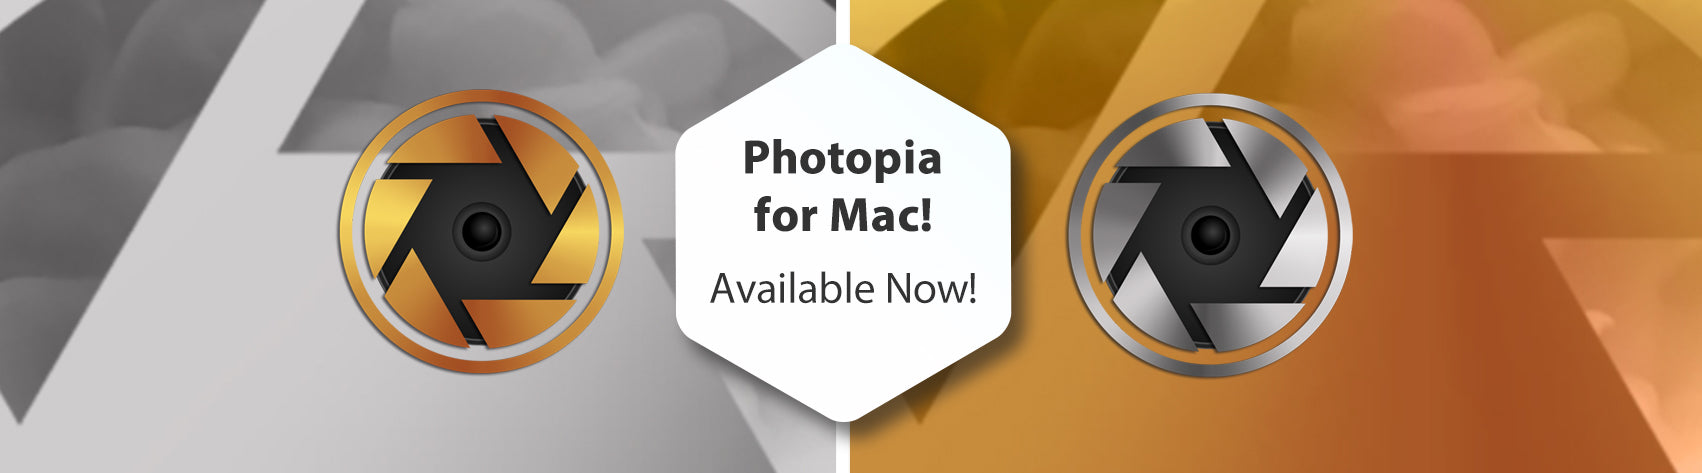 Photopia for Mac!